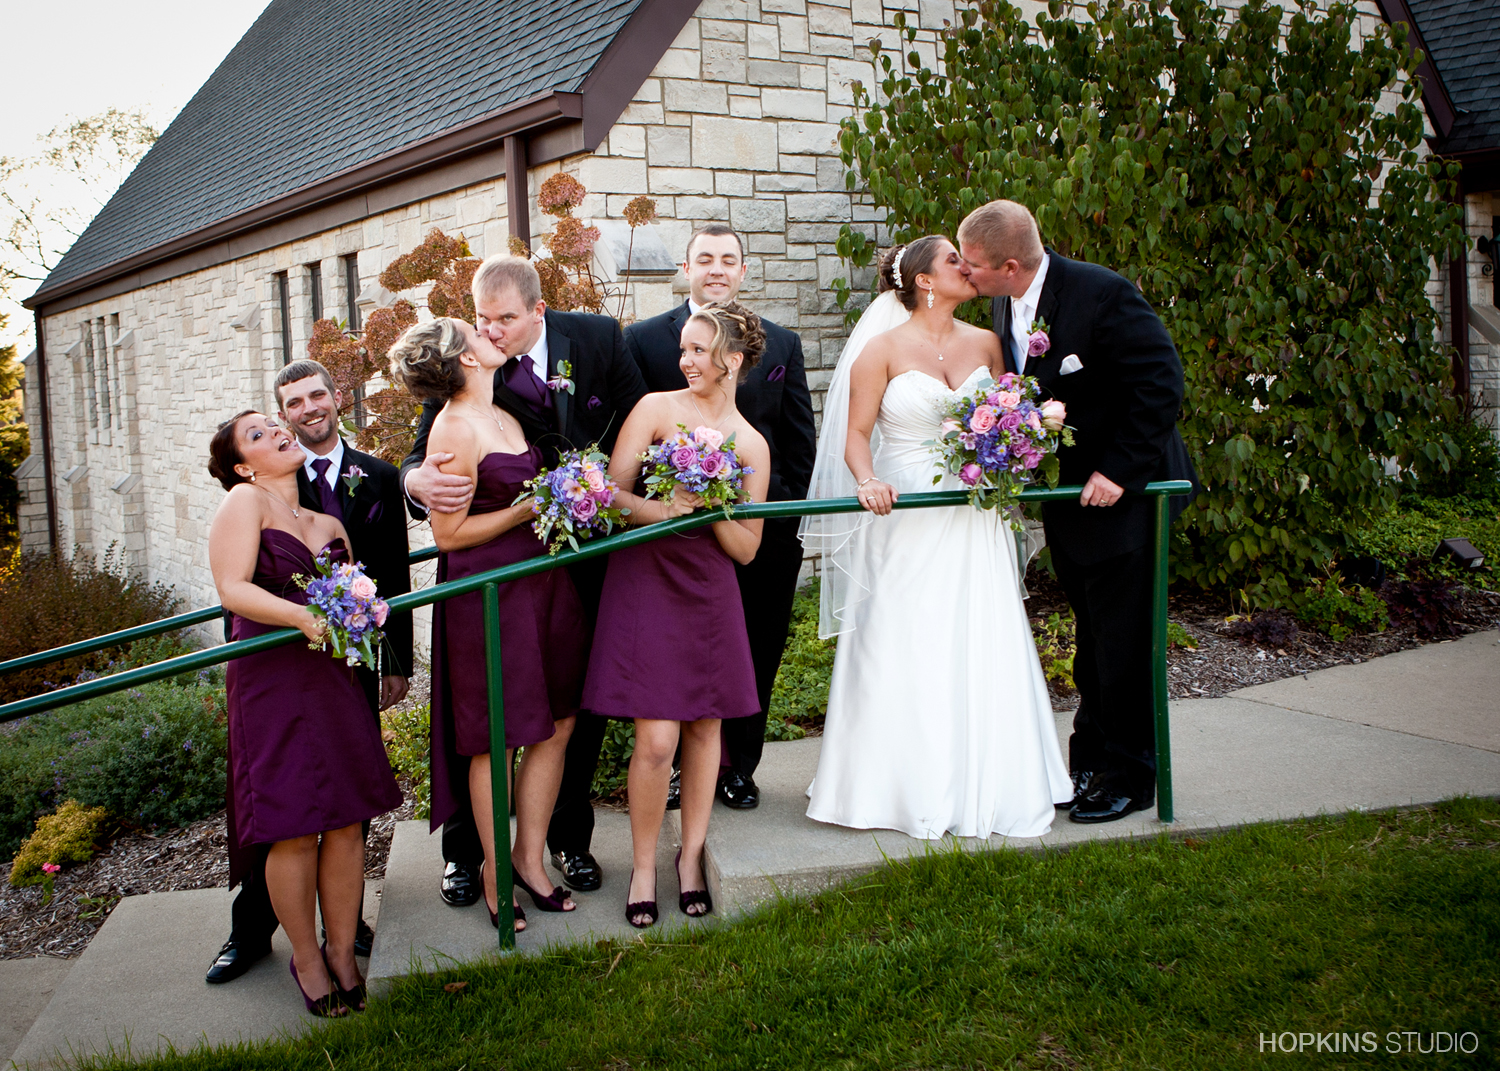 Wedding-Photography-Vineland-Center-Southwest-Michigan_23.jpg